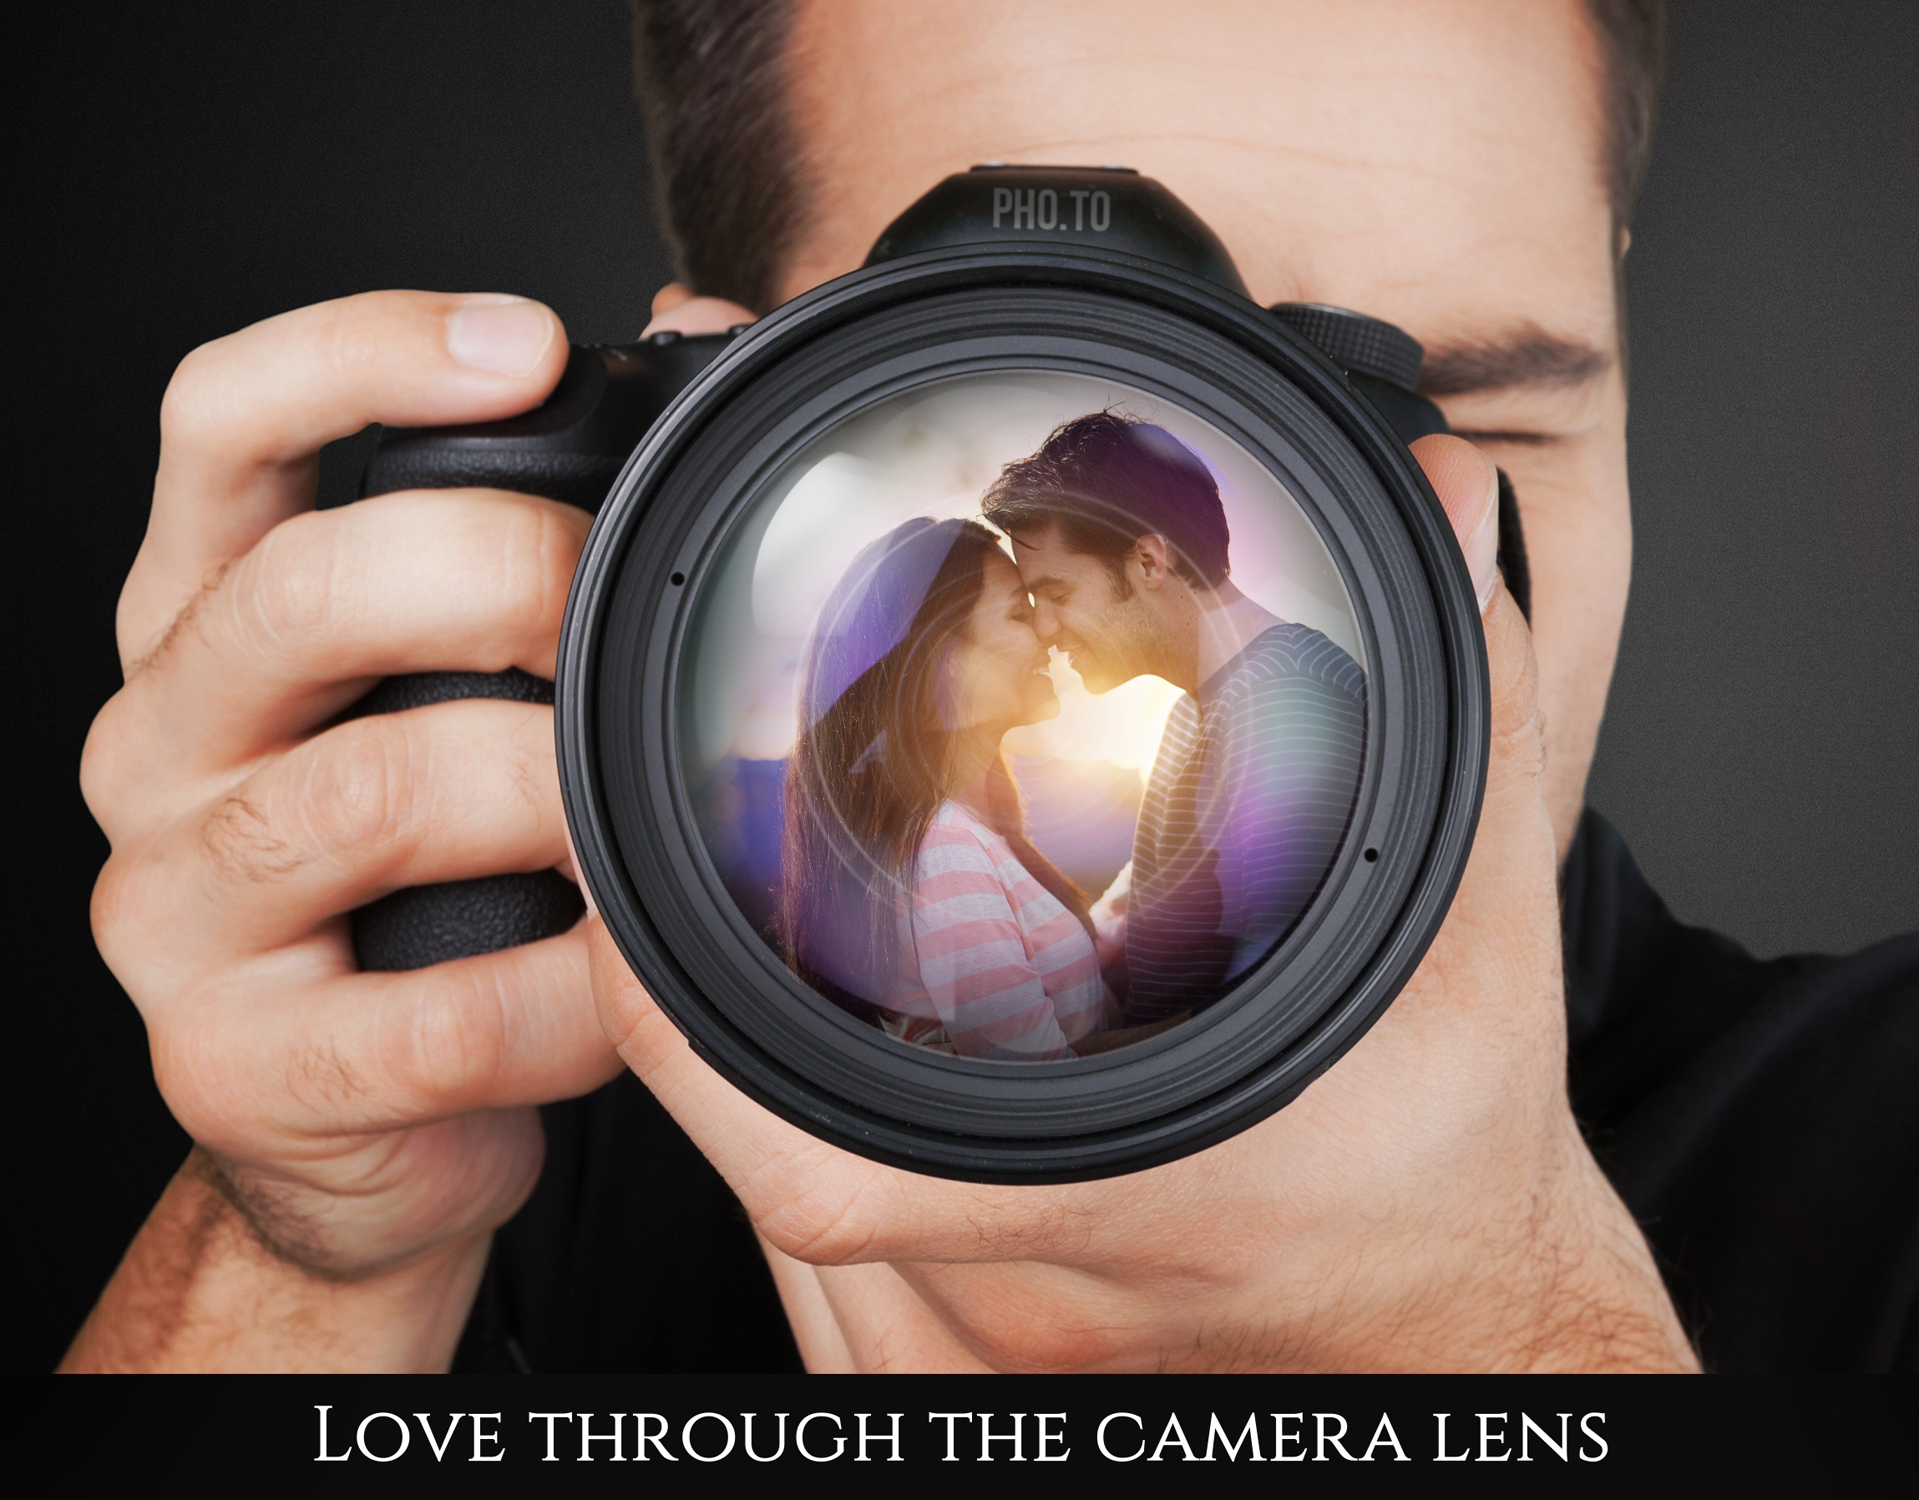 Put the focus on your love: reflect the shot of you two on camera lens